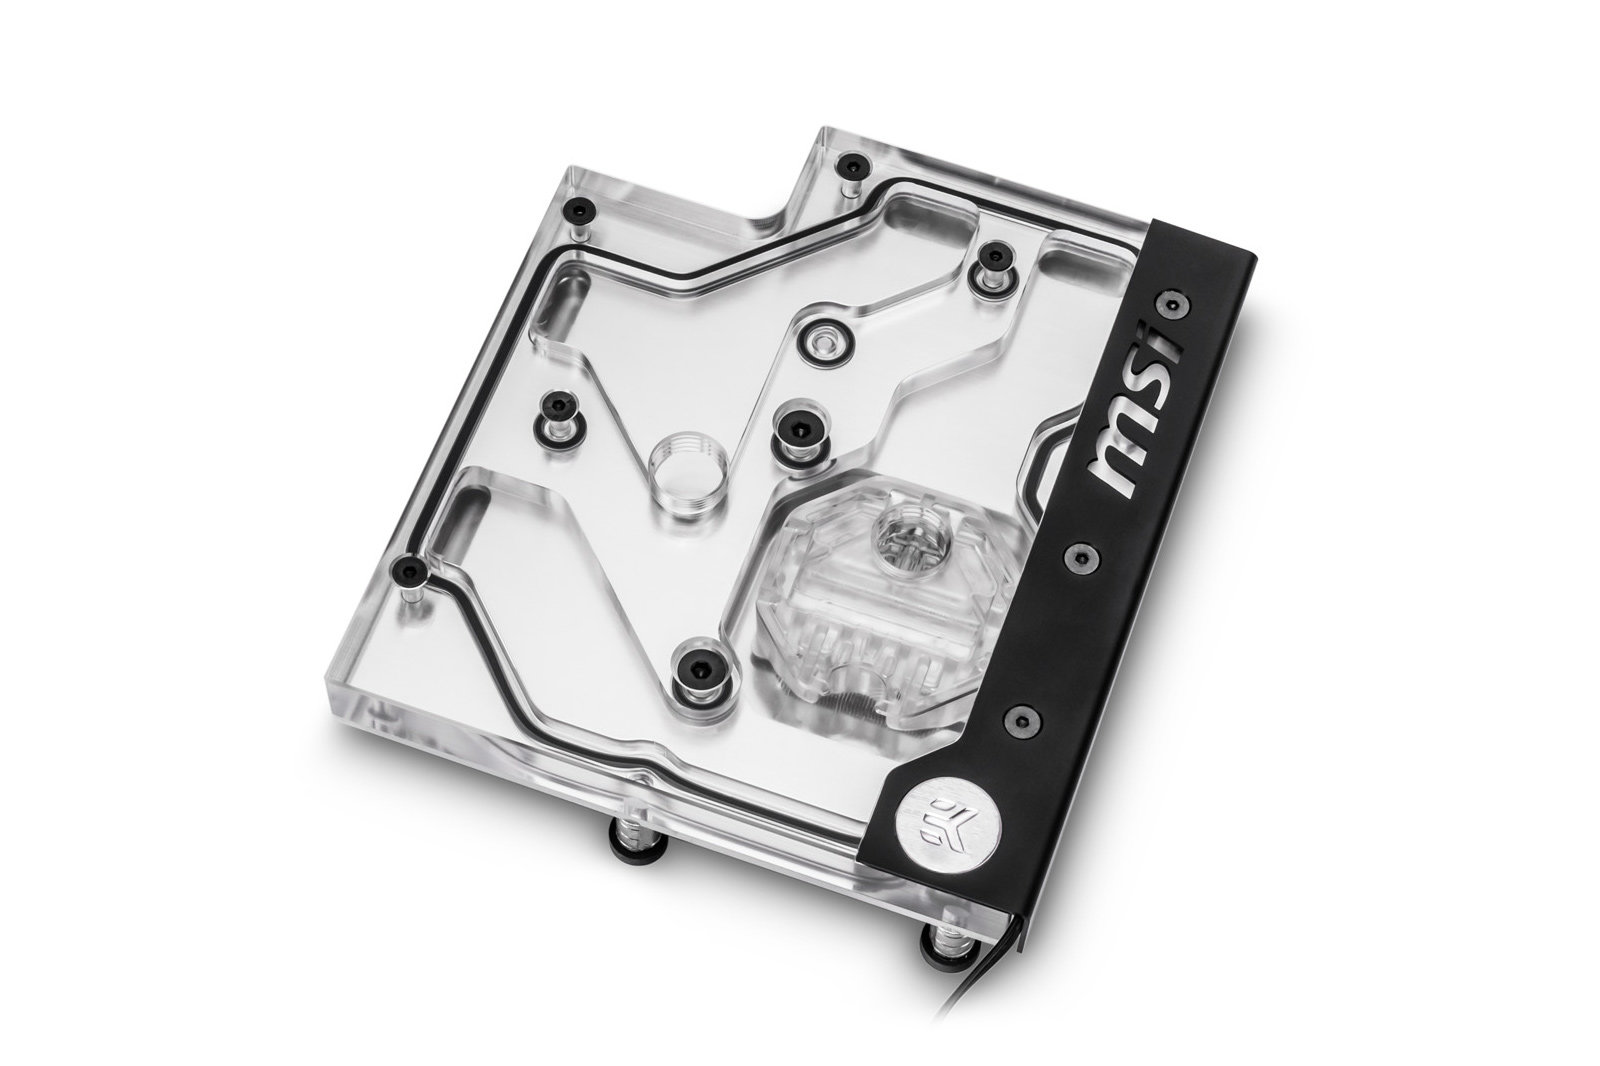 EK Water Blocks EK-FB MSI X470 Pro Carbon RGB